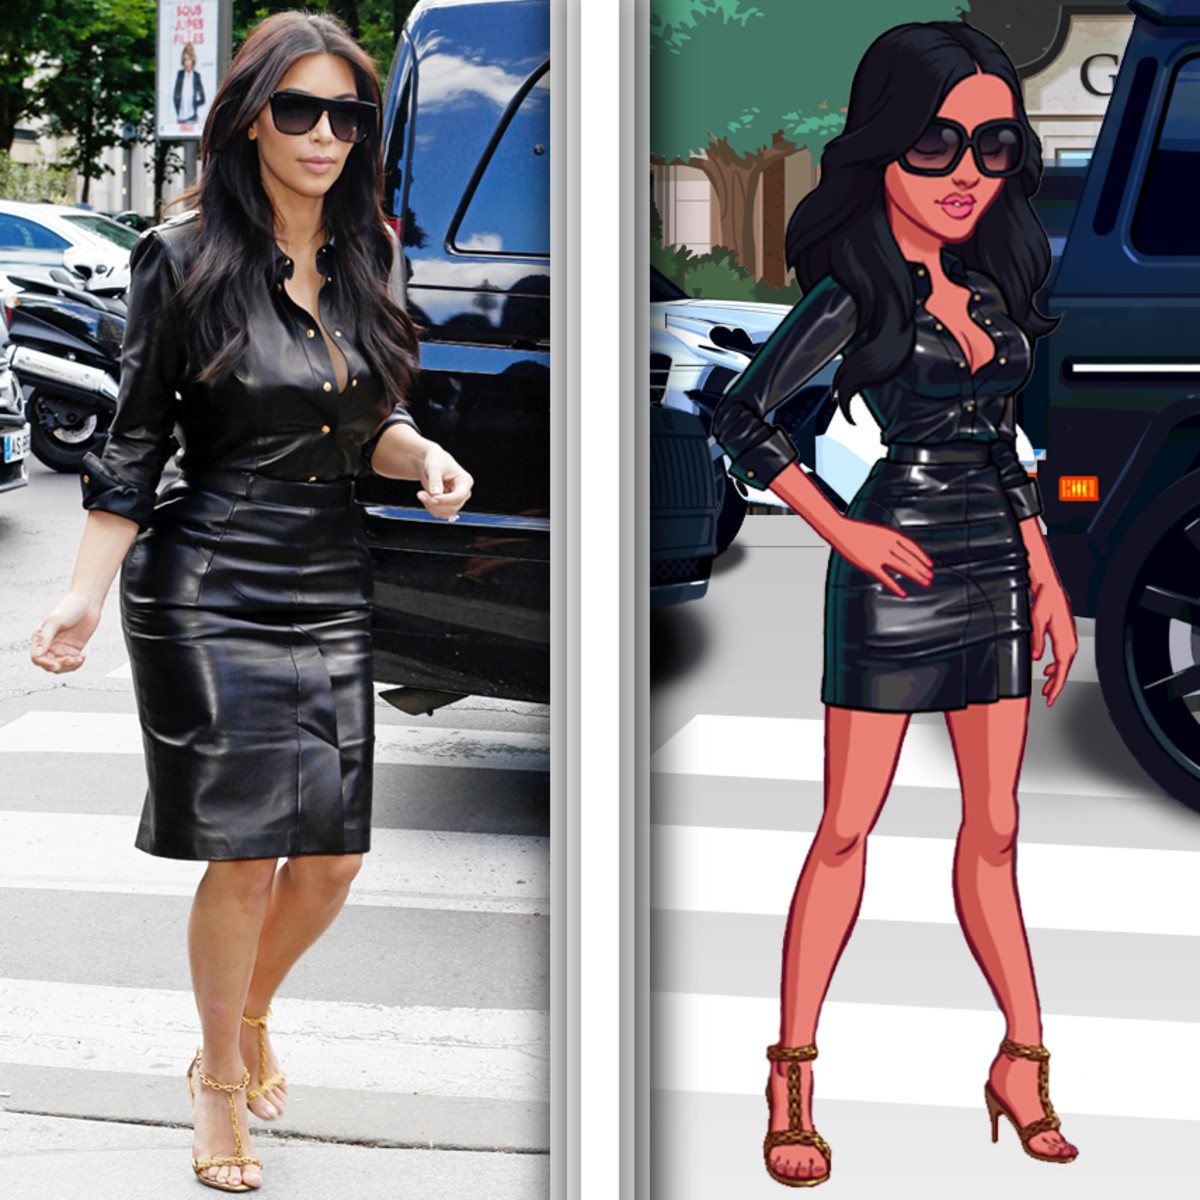 Kim Kardashian wears an edgy leather dress